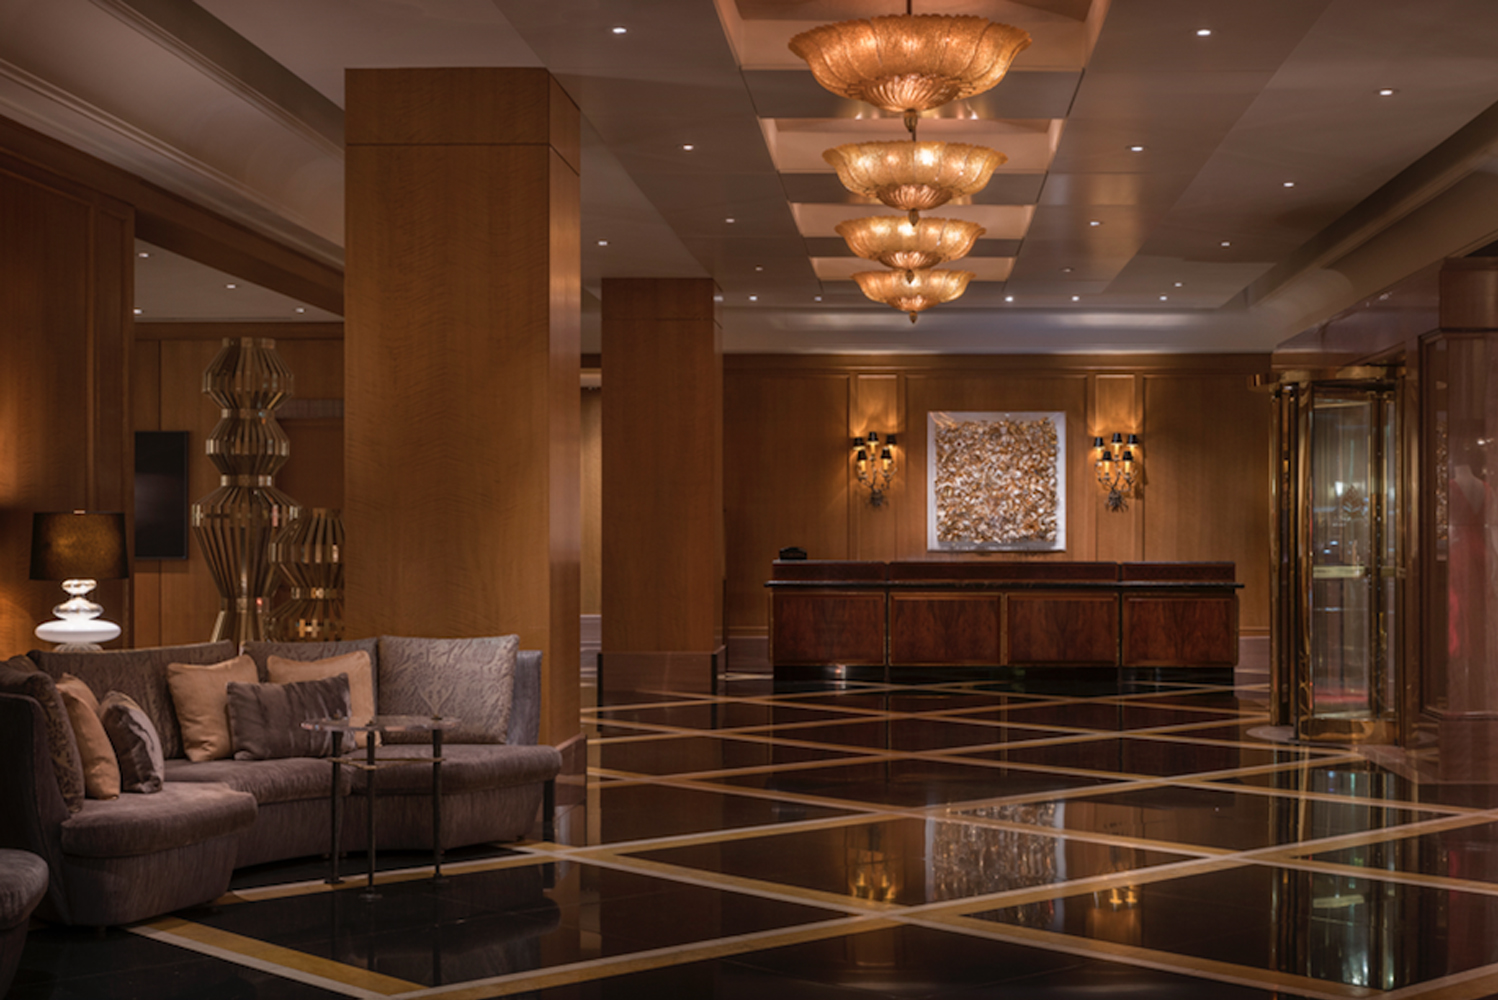 BAMO (SF) returned after 15 years to renovate the Four Seasons Boston.